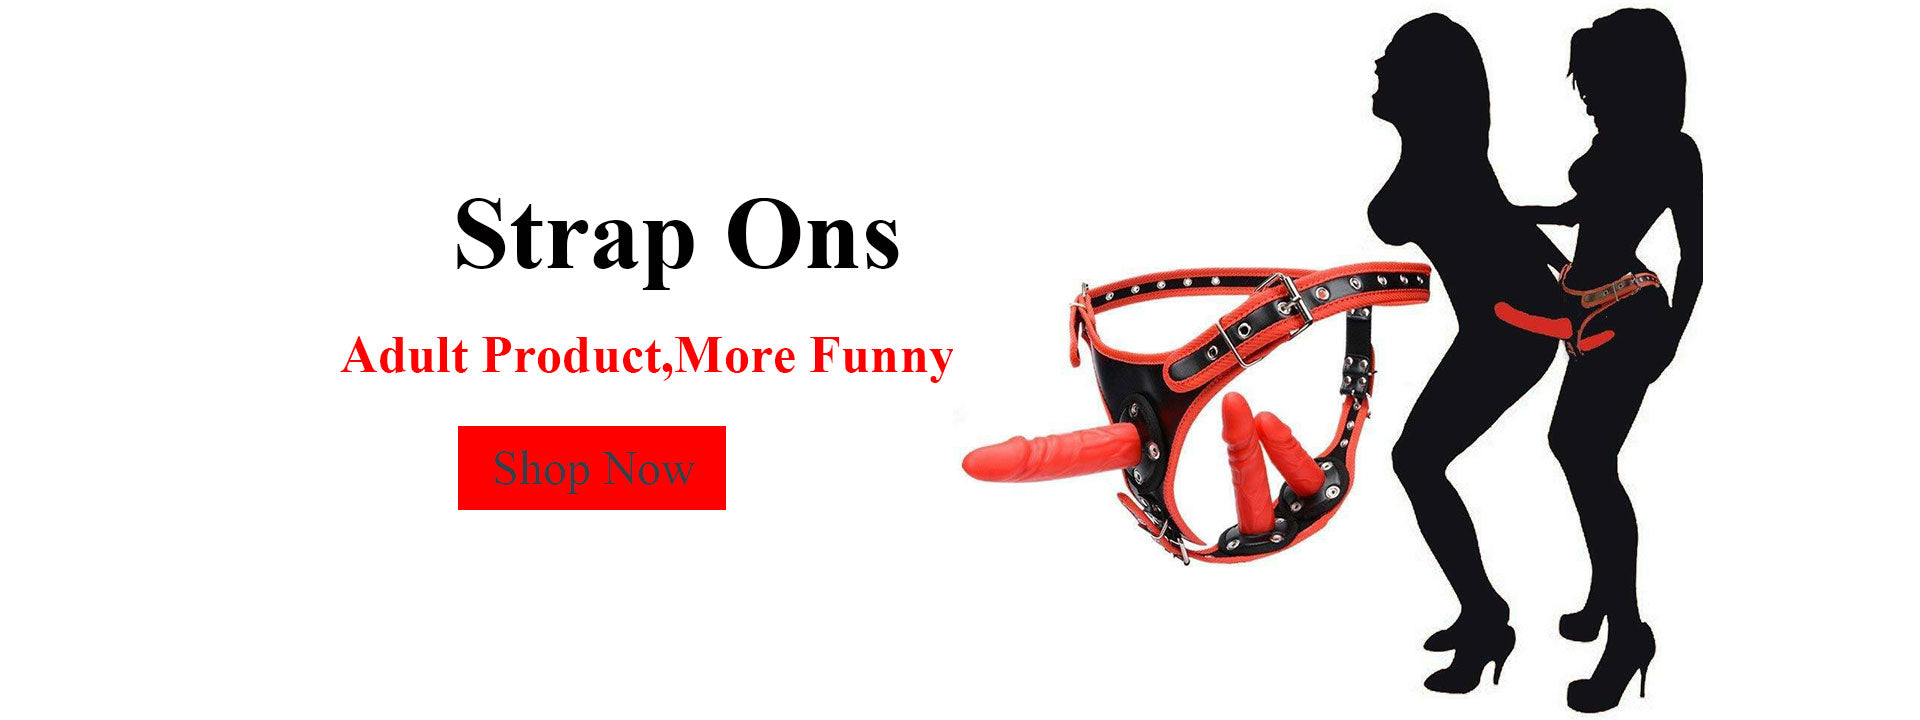 Strap-Ons-Banner